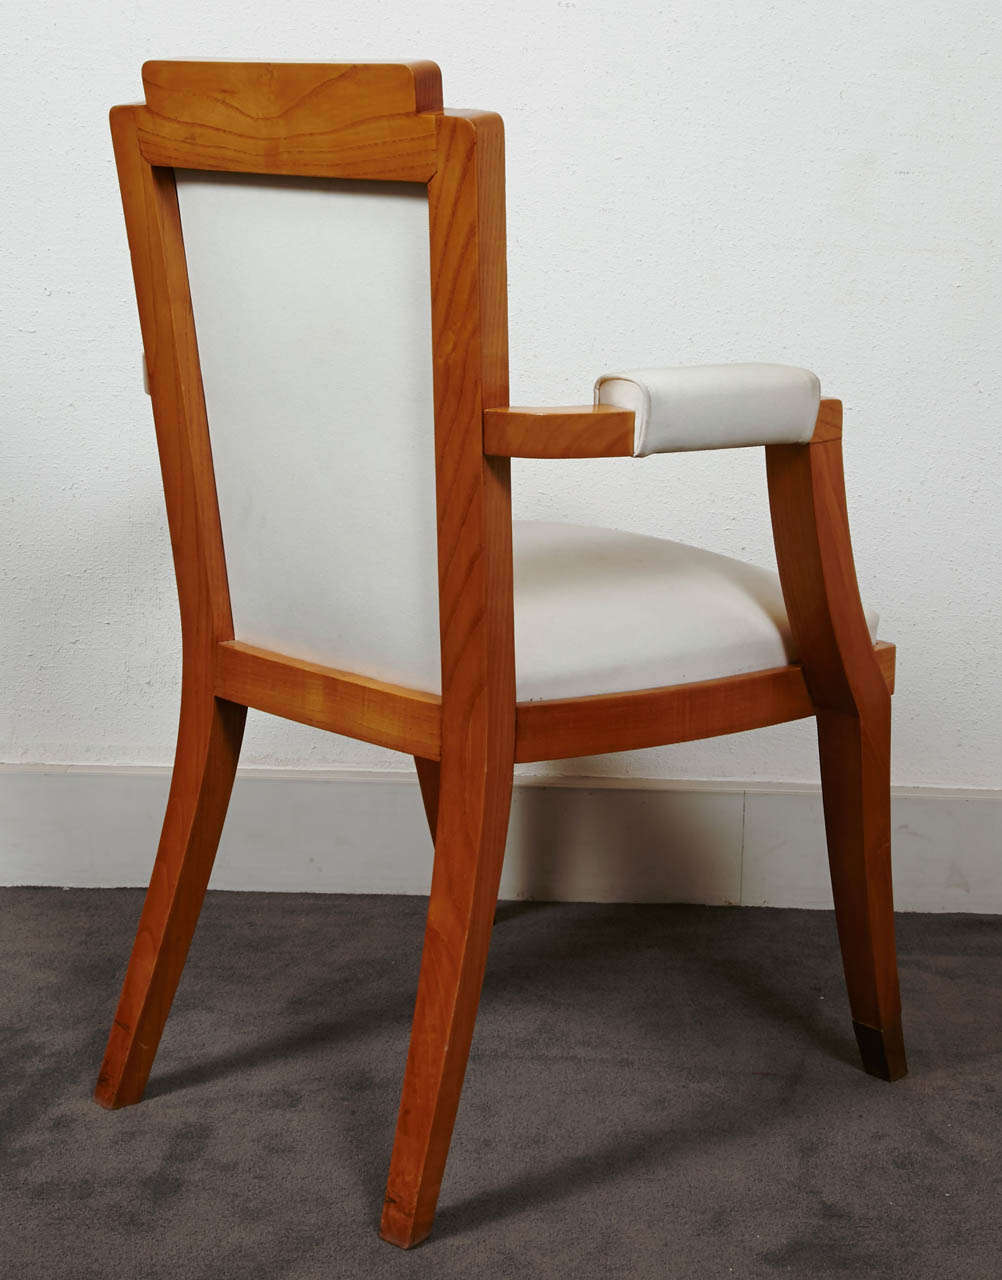 Pair of Beech Tree Armchairs by G. Darbois-Gaudin, 1949 In Good Condition For Sale In Paris, FR